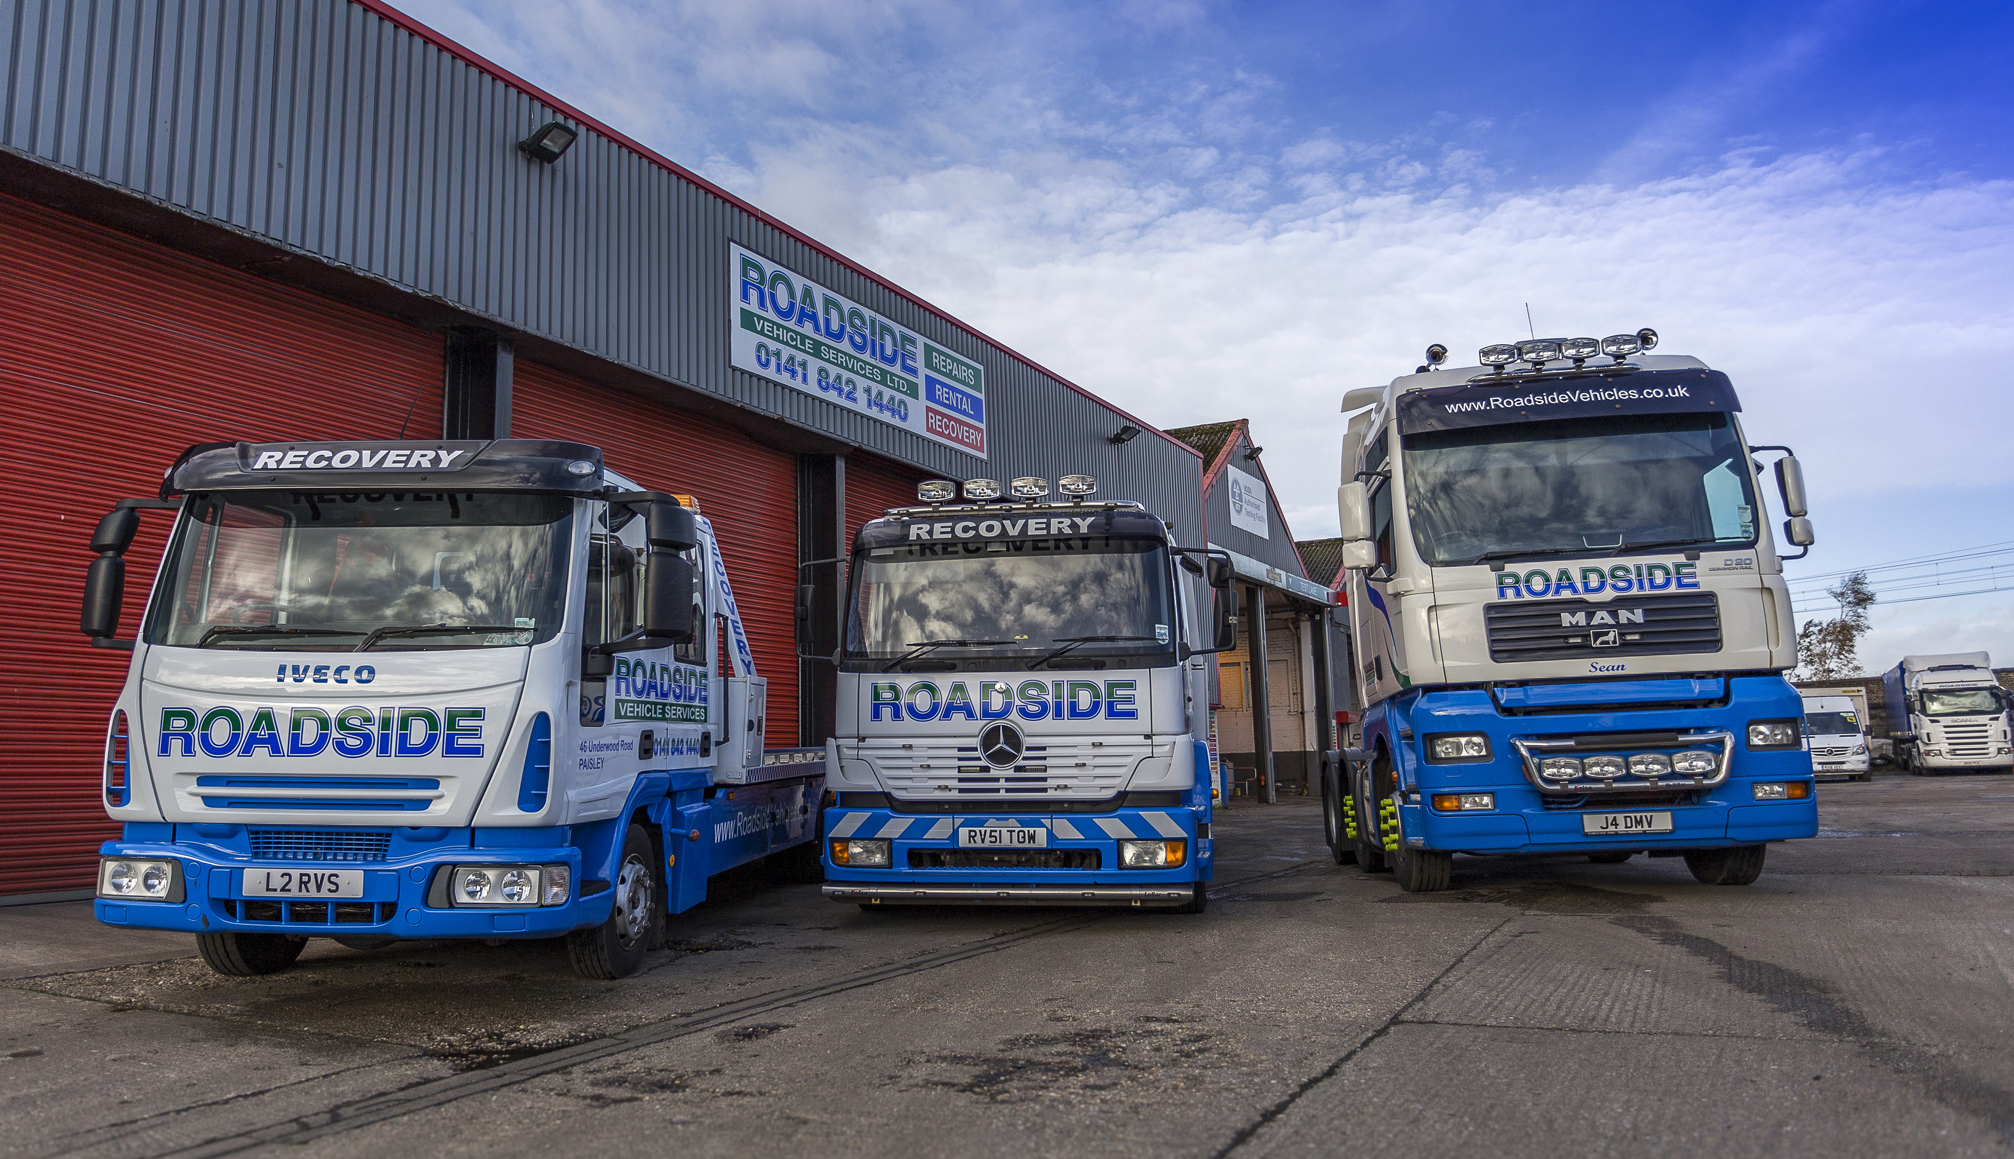 Roadside Vehicles offer a 24hr recovery service & a wide range of